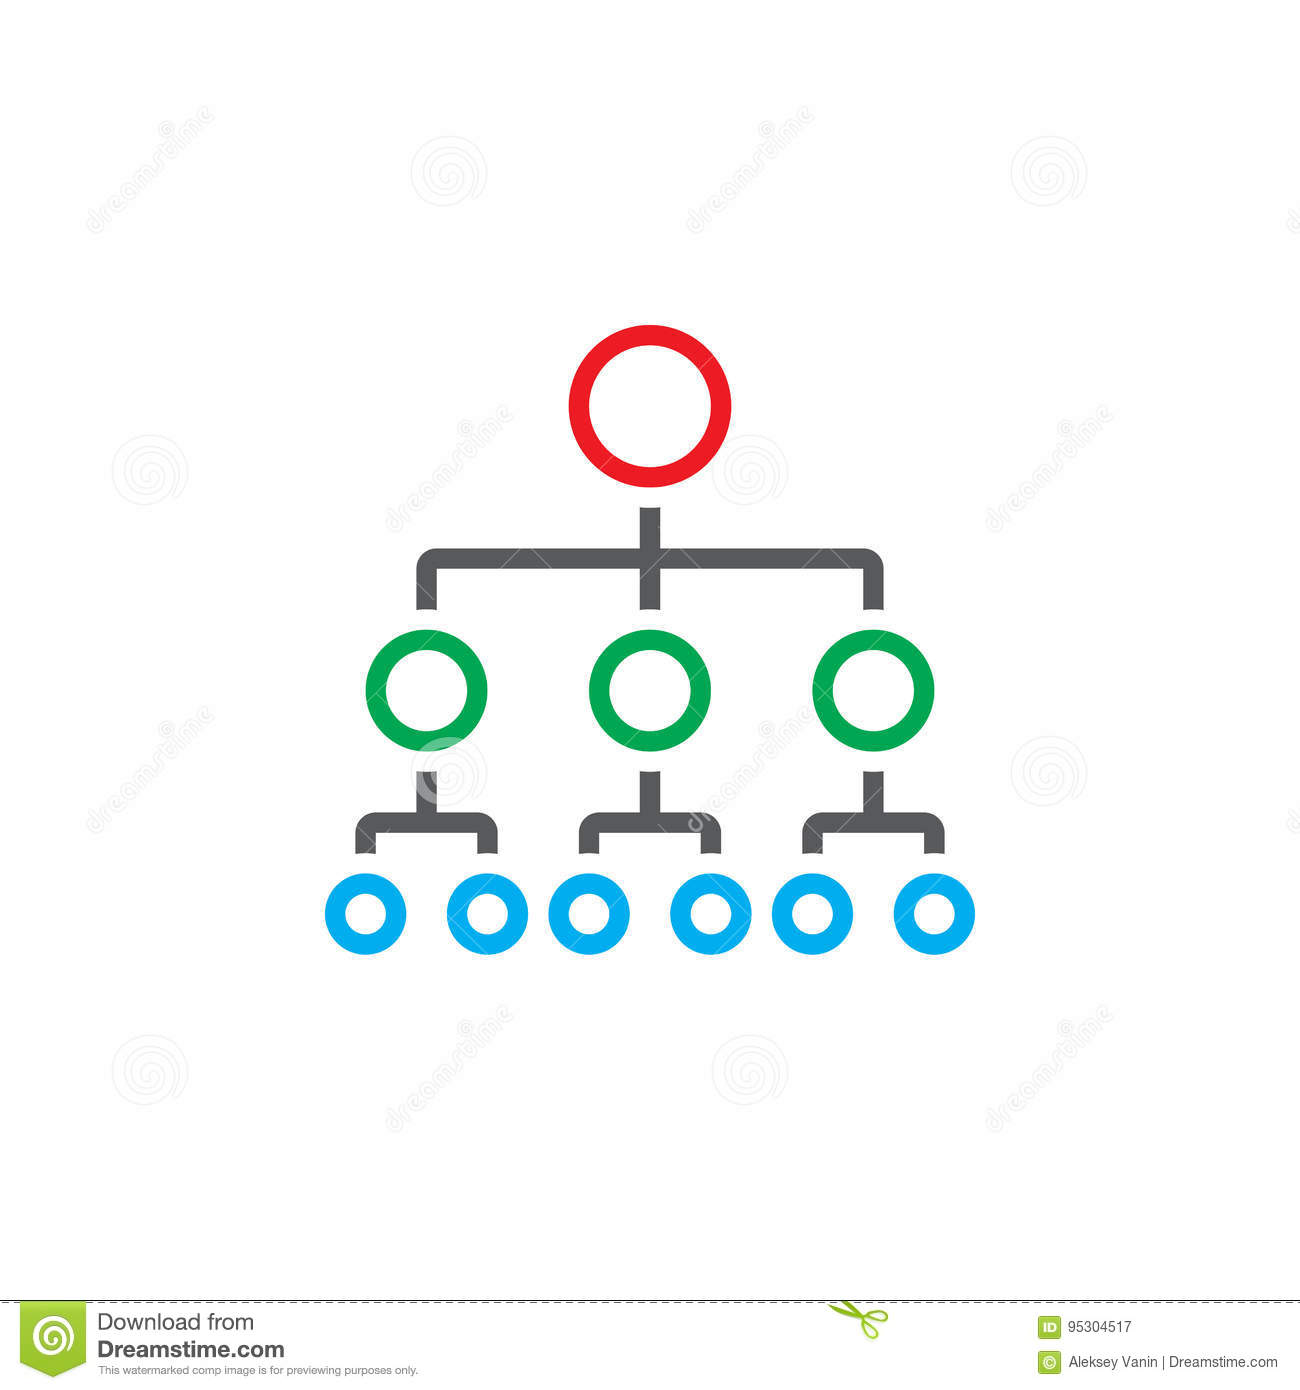 Organizational chart line icon outline hierarchy vector logo stock download comp ccuart Image collections